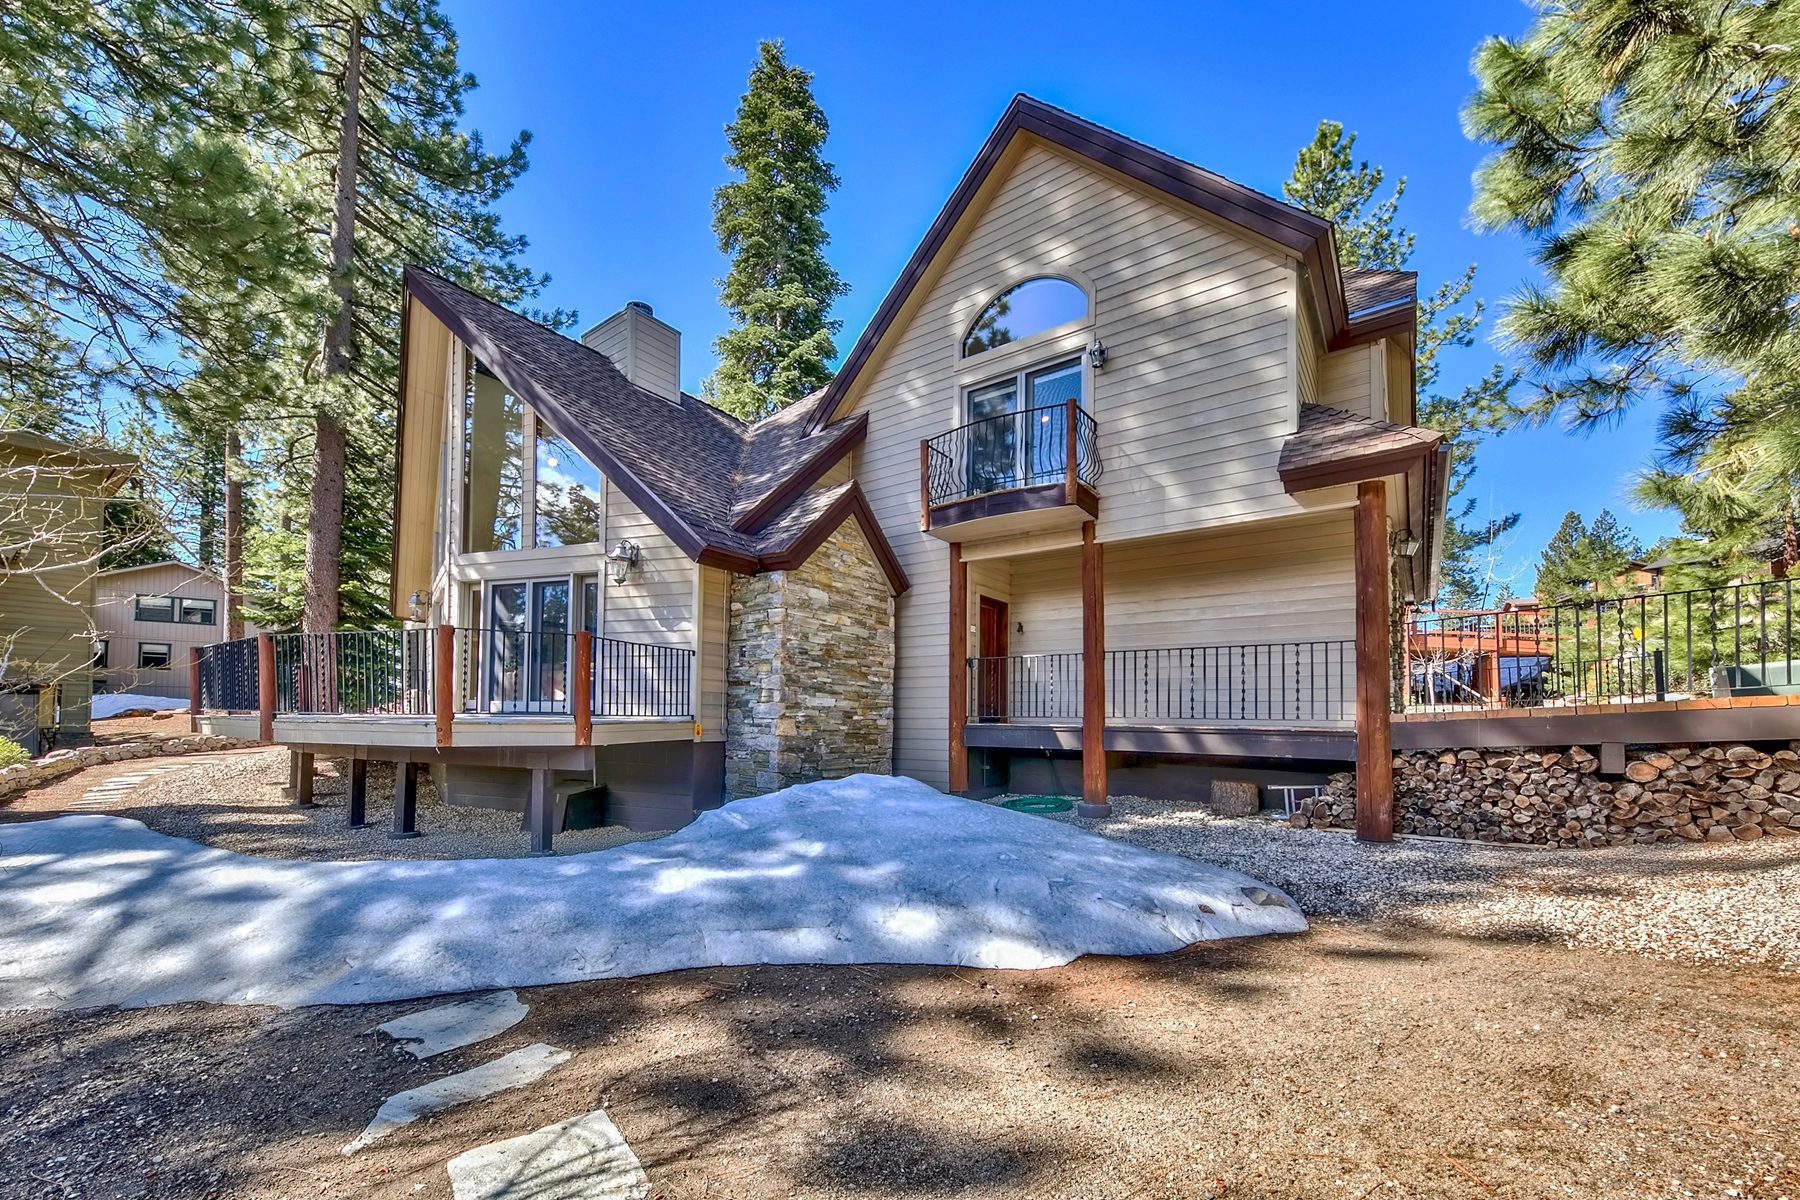 single family homes for Active at 825 Jeffrey St, Incline Village, NV 89451 825 Jeffrey Street Incline Village, Nevada 89451 United States